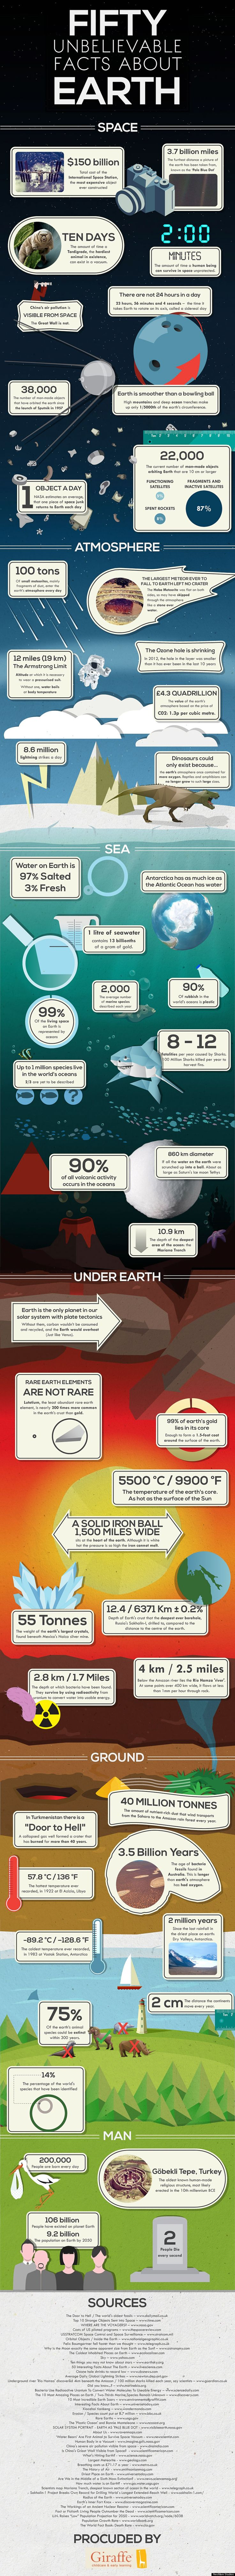 Fifty unbelievable facts about Earth. Space, atmosphere, sea, under Earth, ground and man. Infographic.